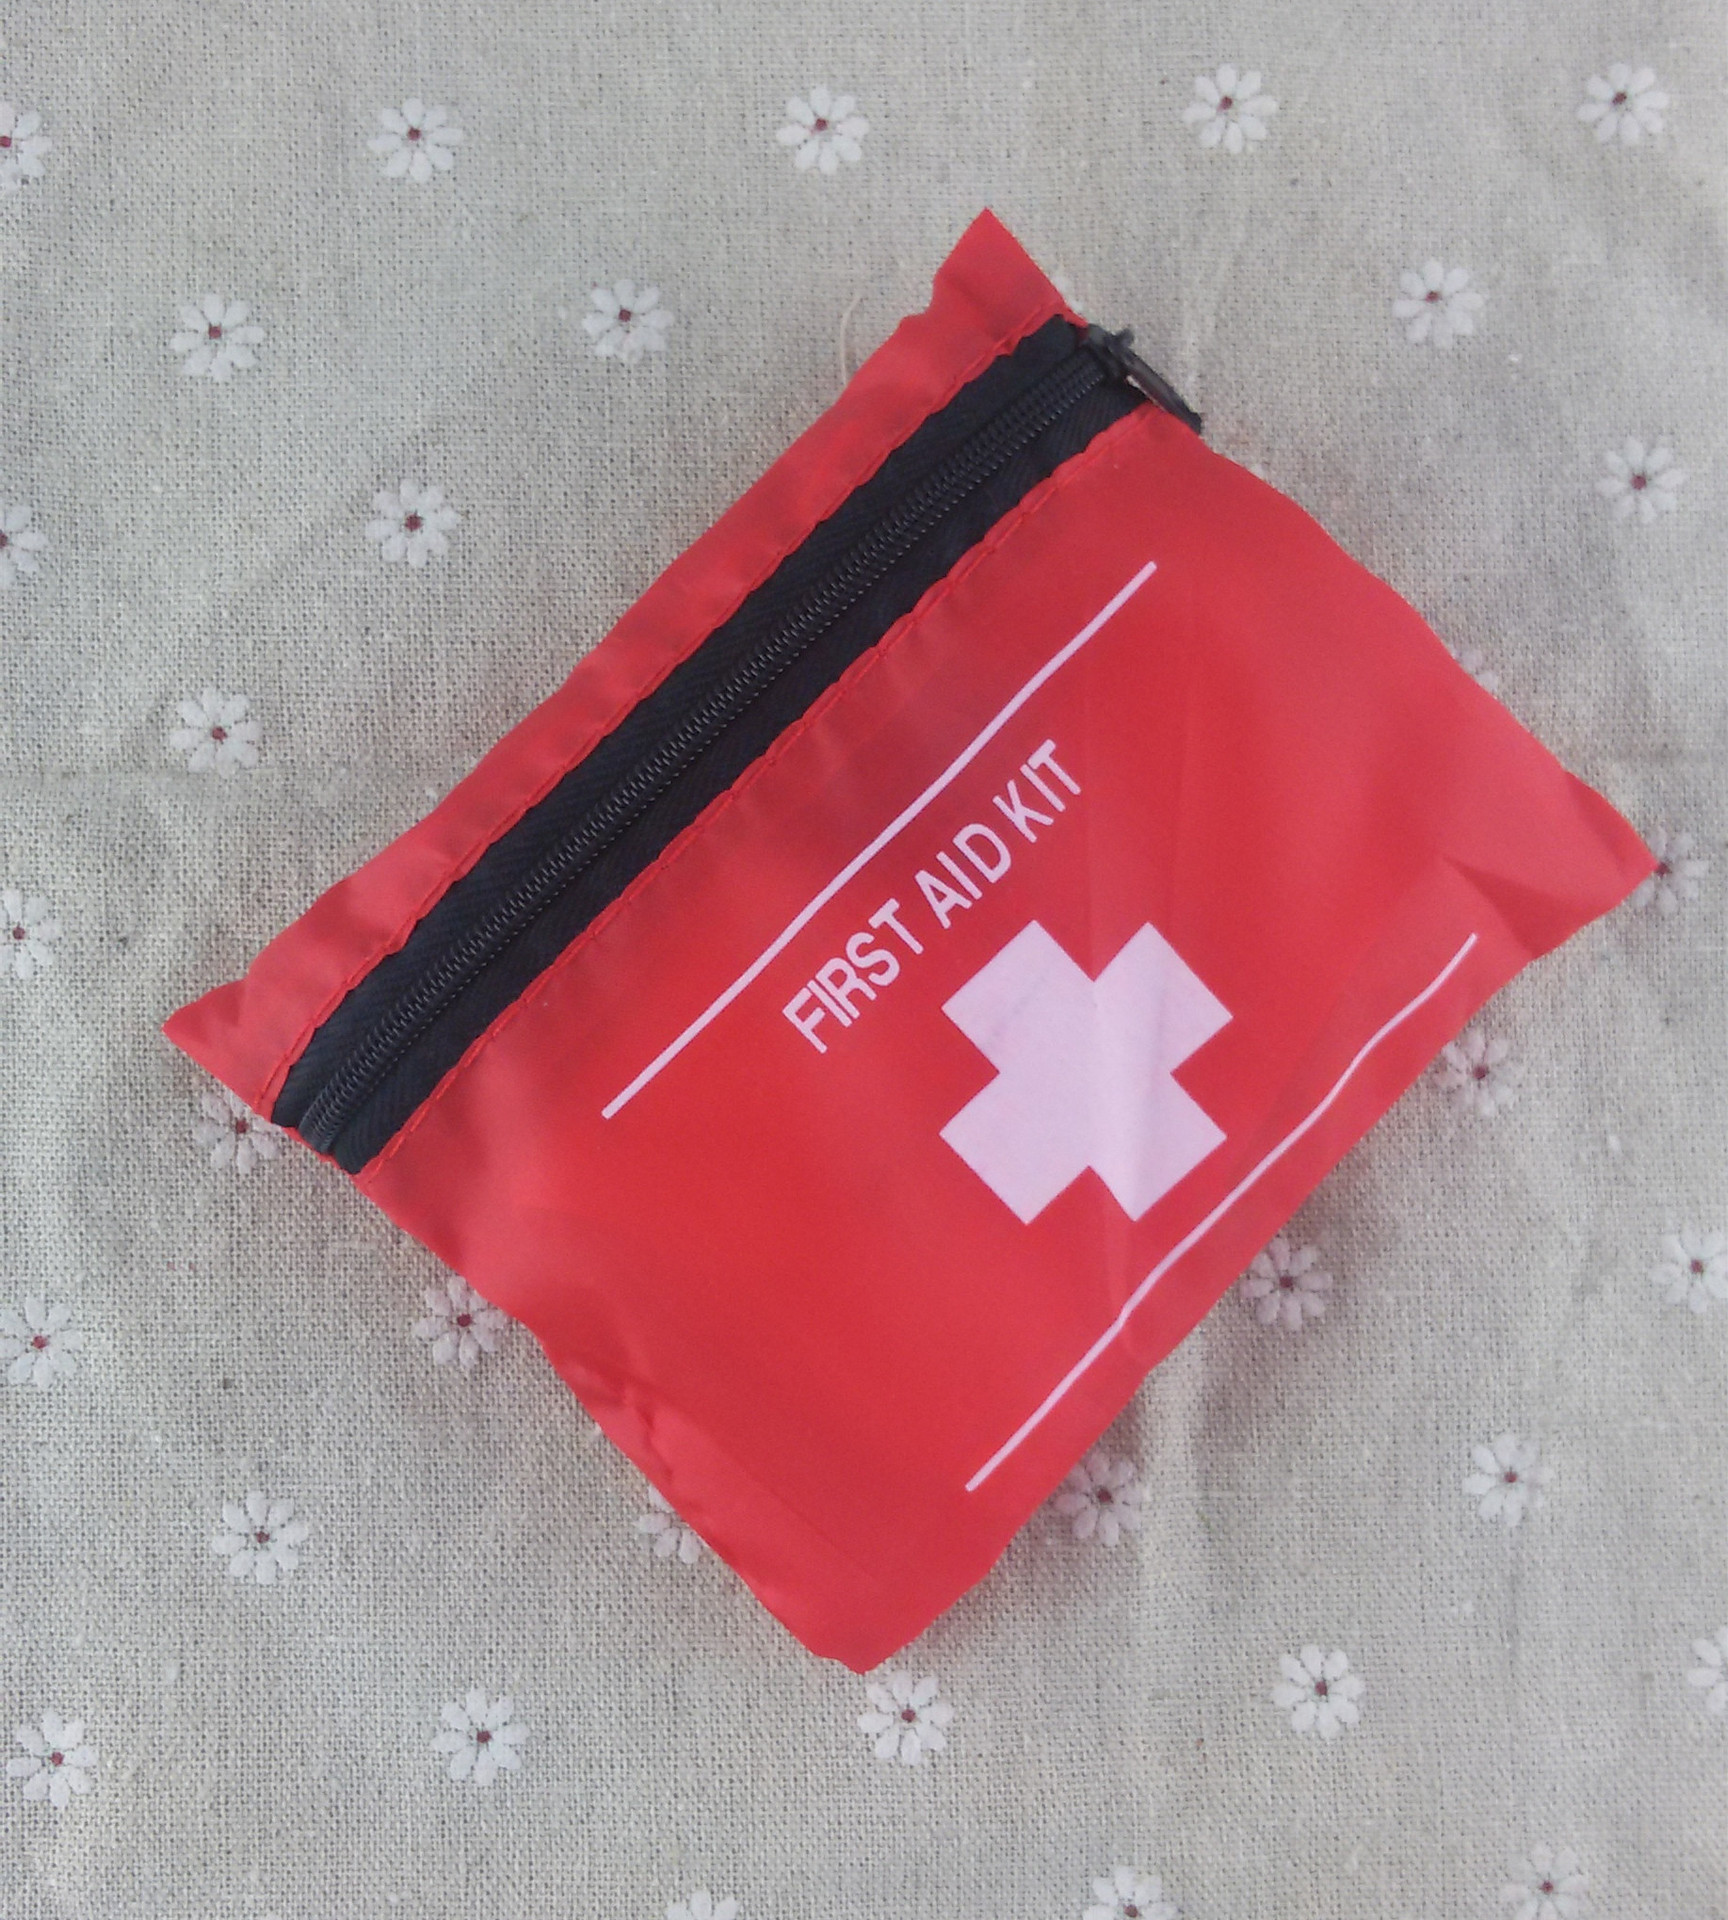 7 in 1 outdoor travel medical package earthquake medicine package family first aid kit 13 * 10.5cm Emergency Kits 5000pcs(China (Mainland))